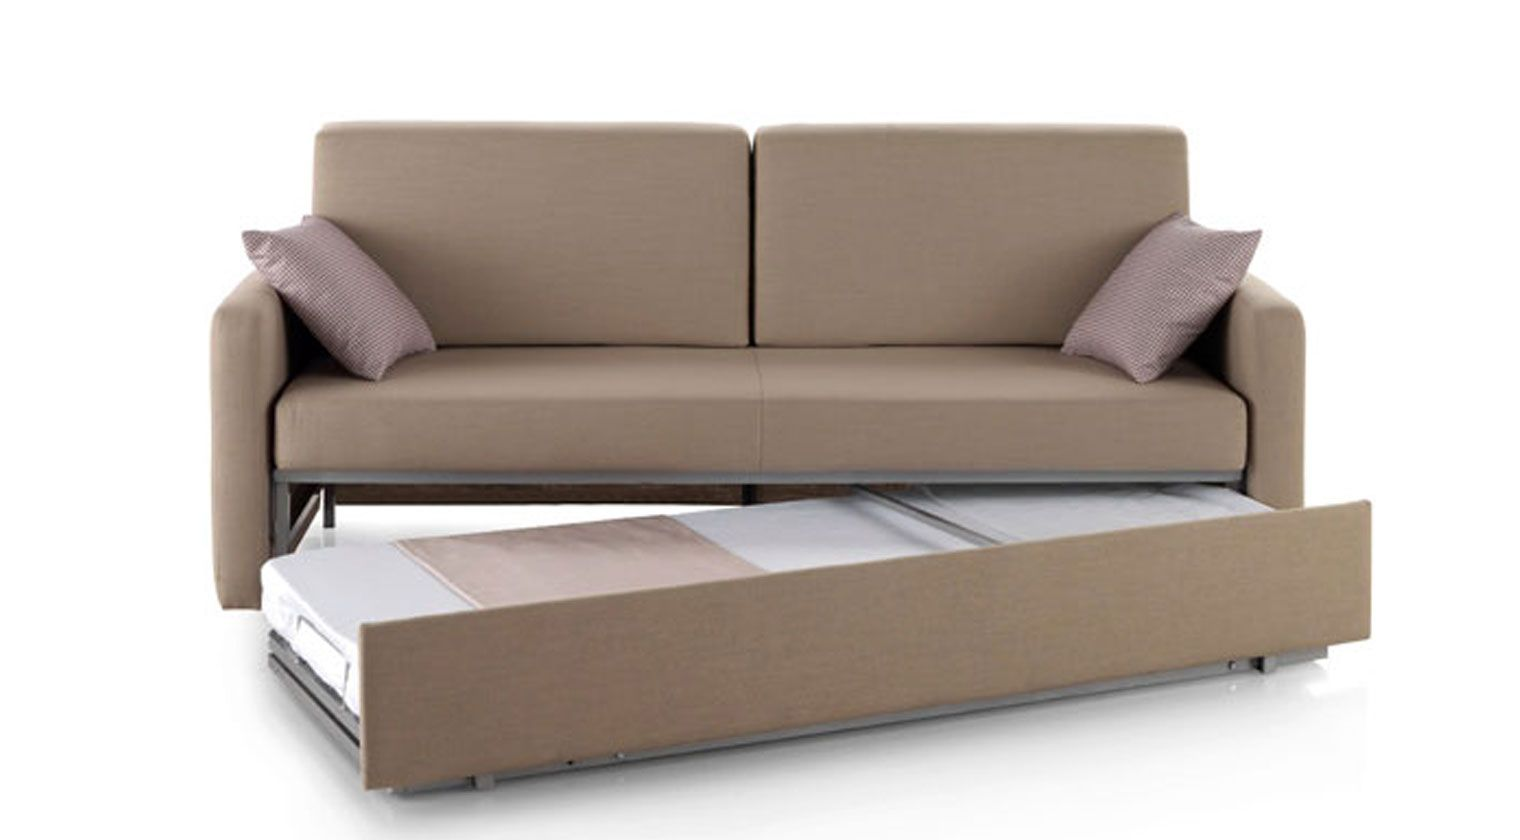 Sof cama tours sofas cama extensible nido for Sofa cama una plaza conforama